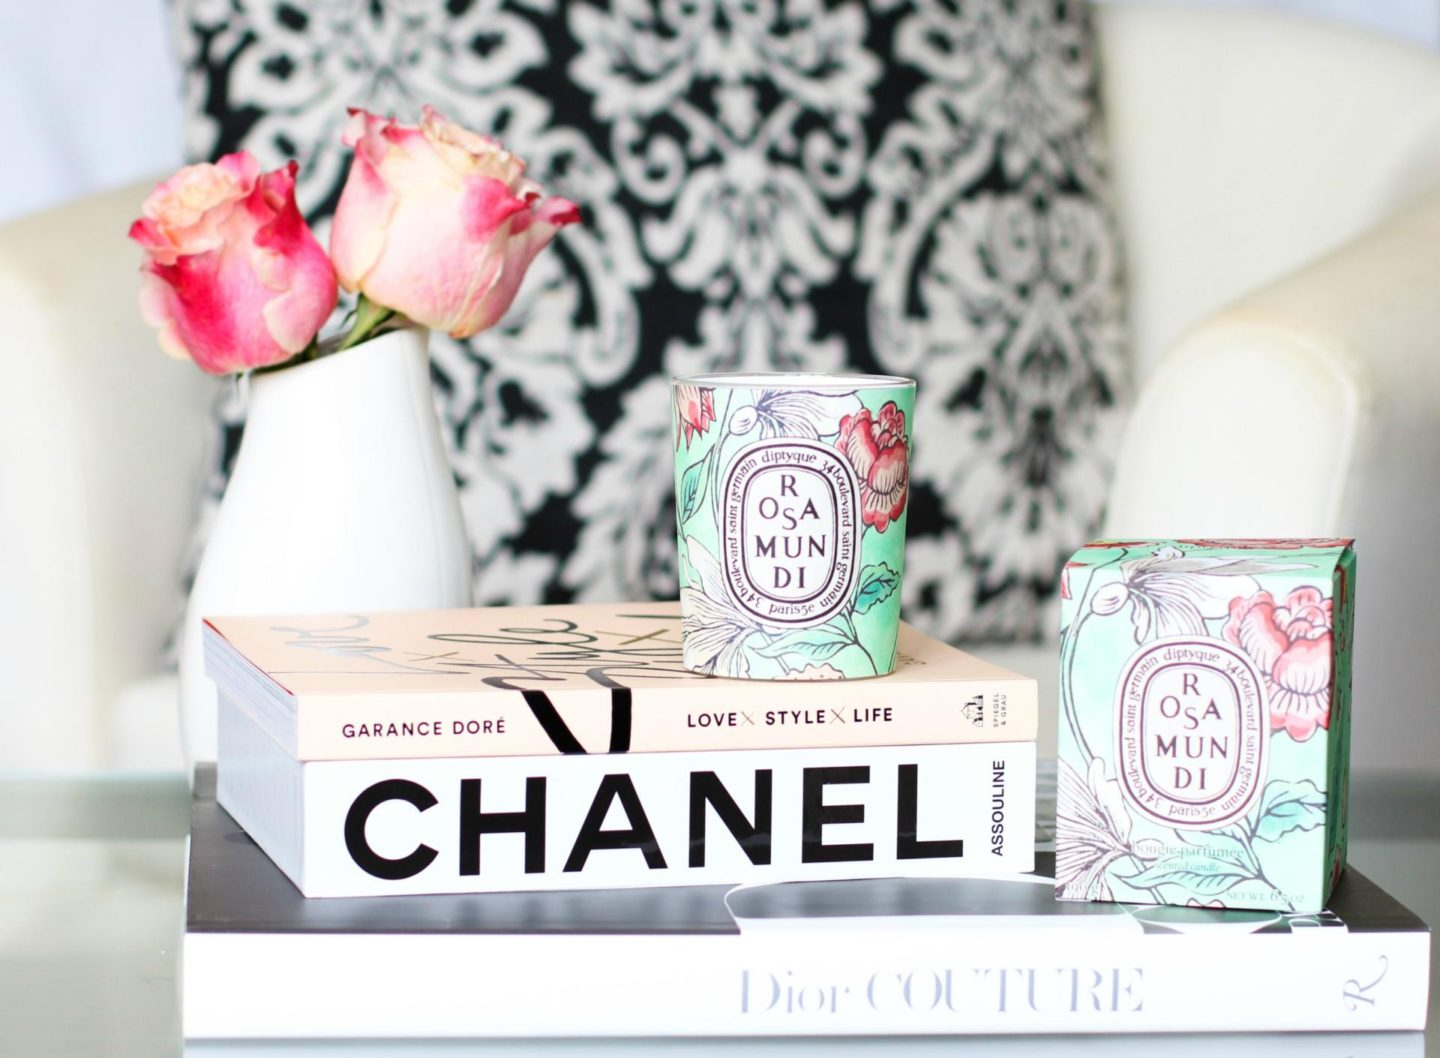 Diptyque Rosa Mundi 2017 Limited Edition Candle